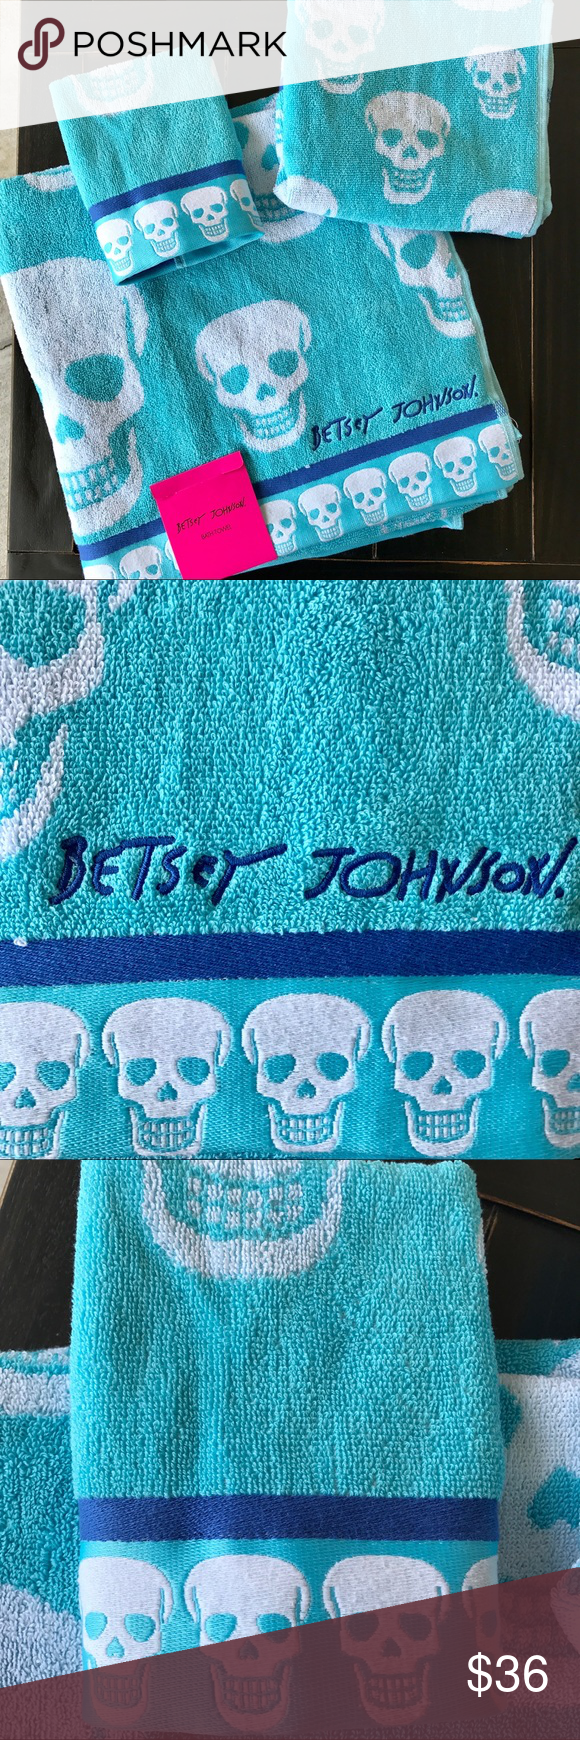 Betsey Johnson Towels Blue & White Skulls NWT | Large baths ...